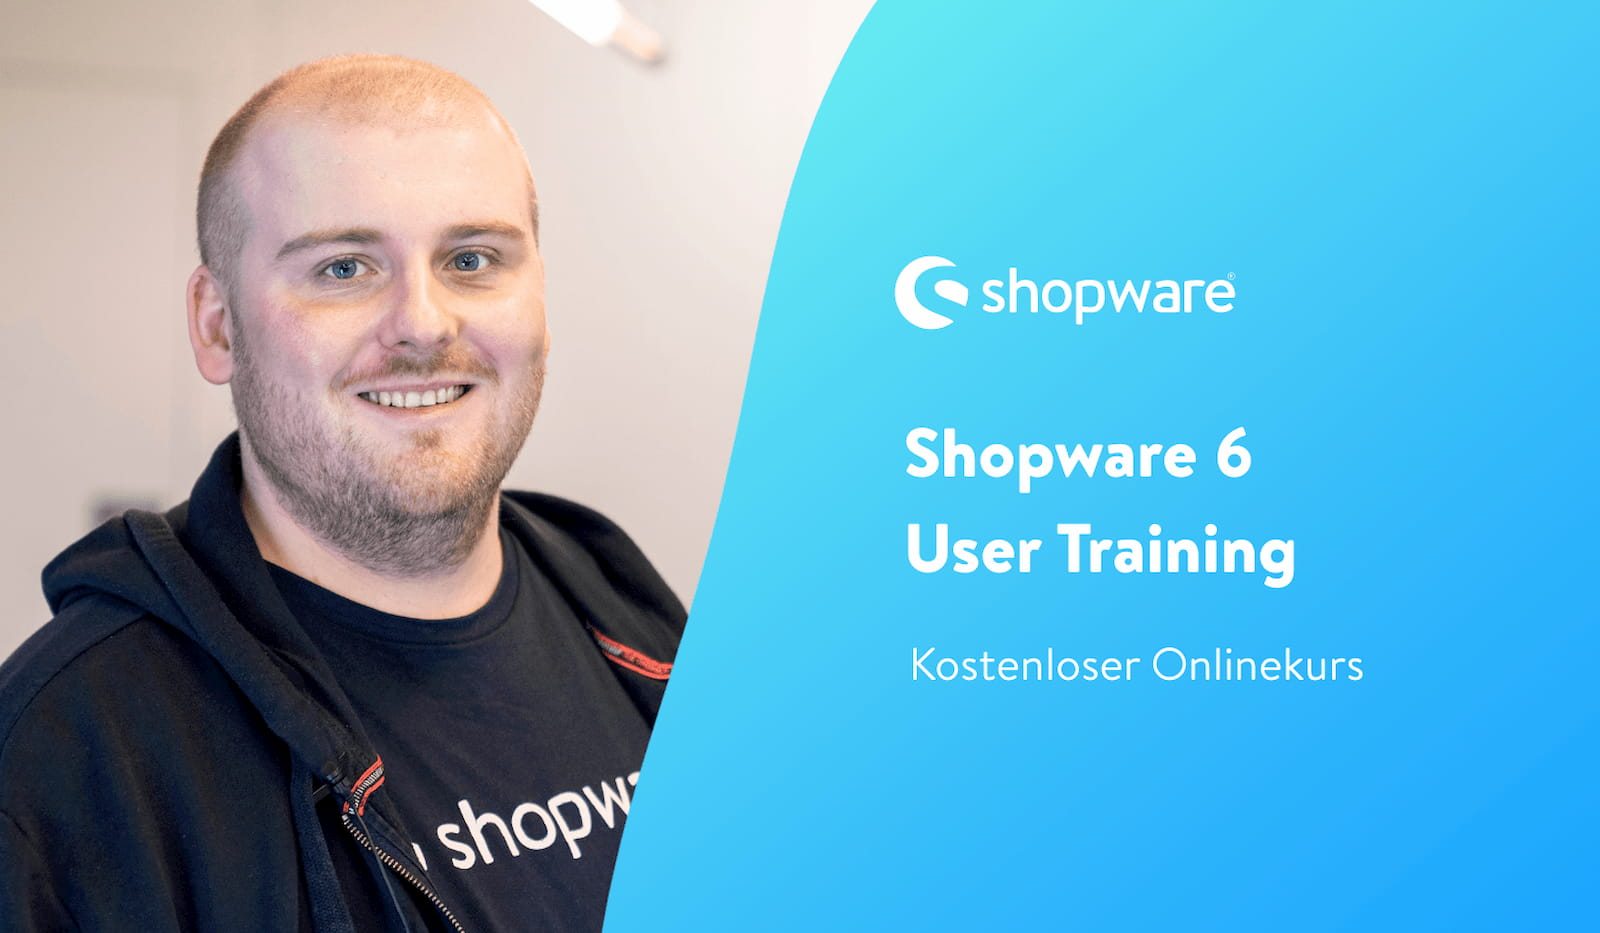 Shopware6 User Training Onlinekurs